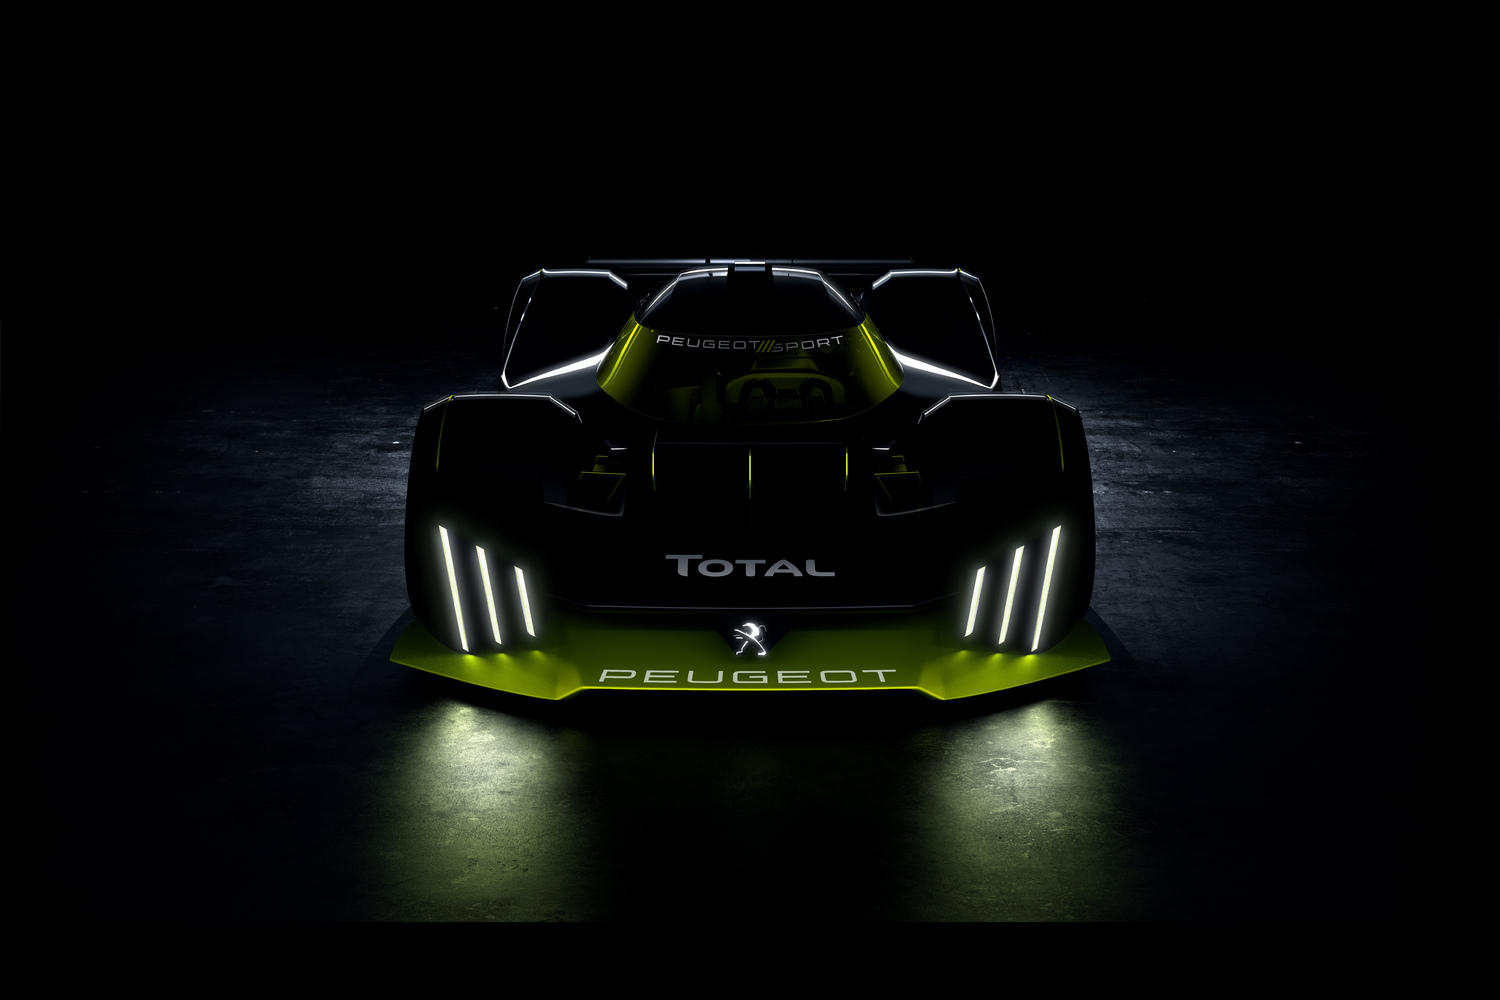 Car News | Peugeot returns to Le Mans with dramatic hypercar | CompleteCar.ie